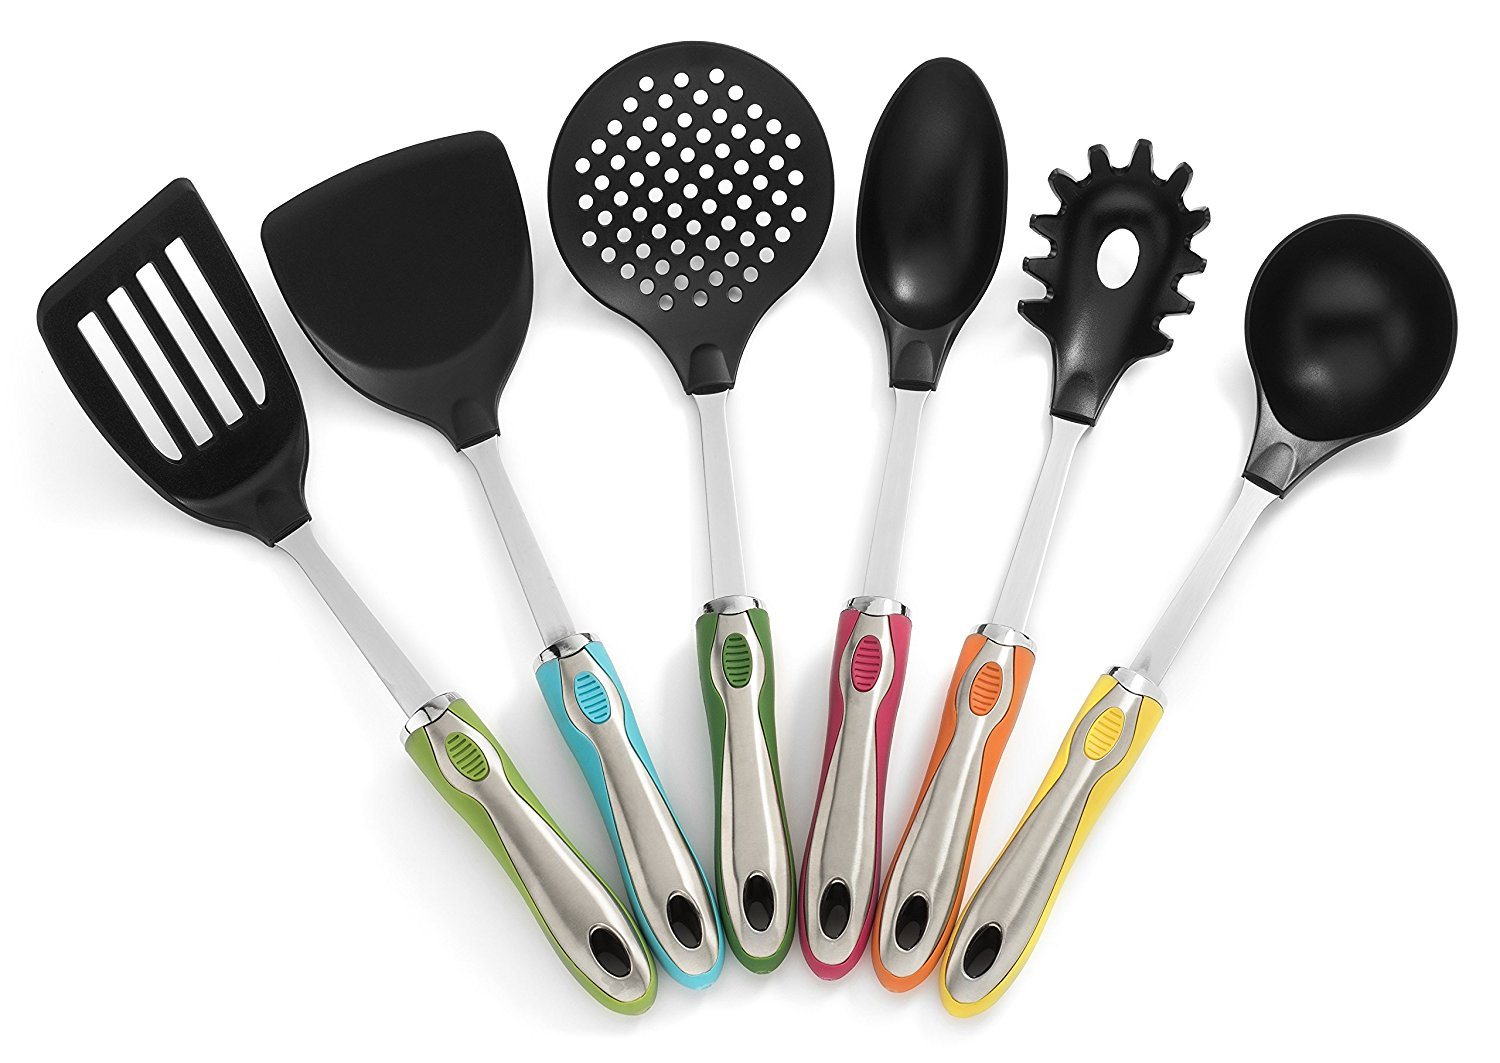 Kitchen Utensils with Holder 7 Pc Cute Utensil Set ...